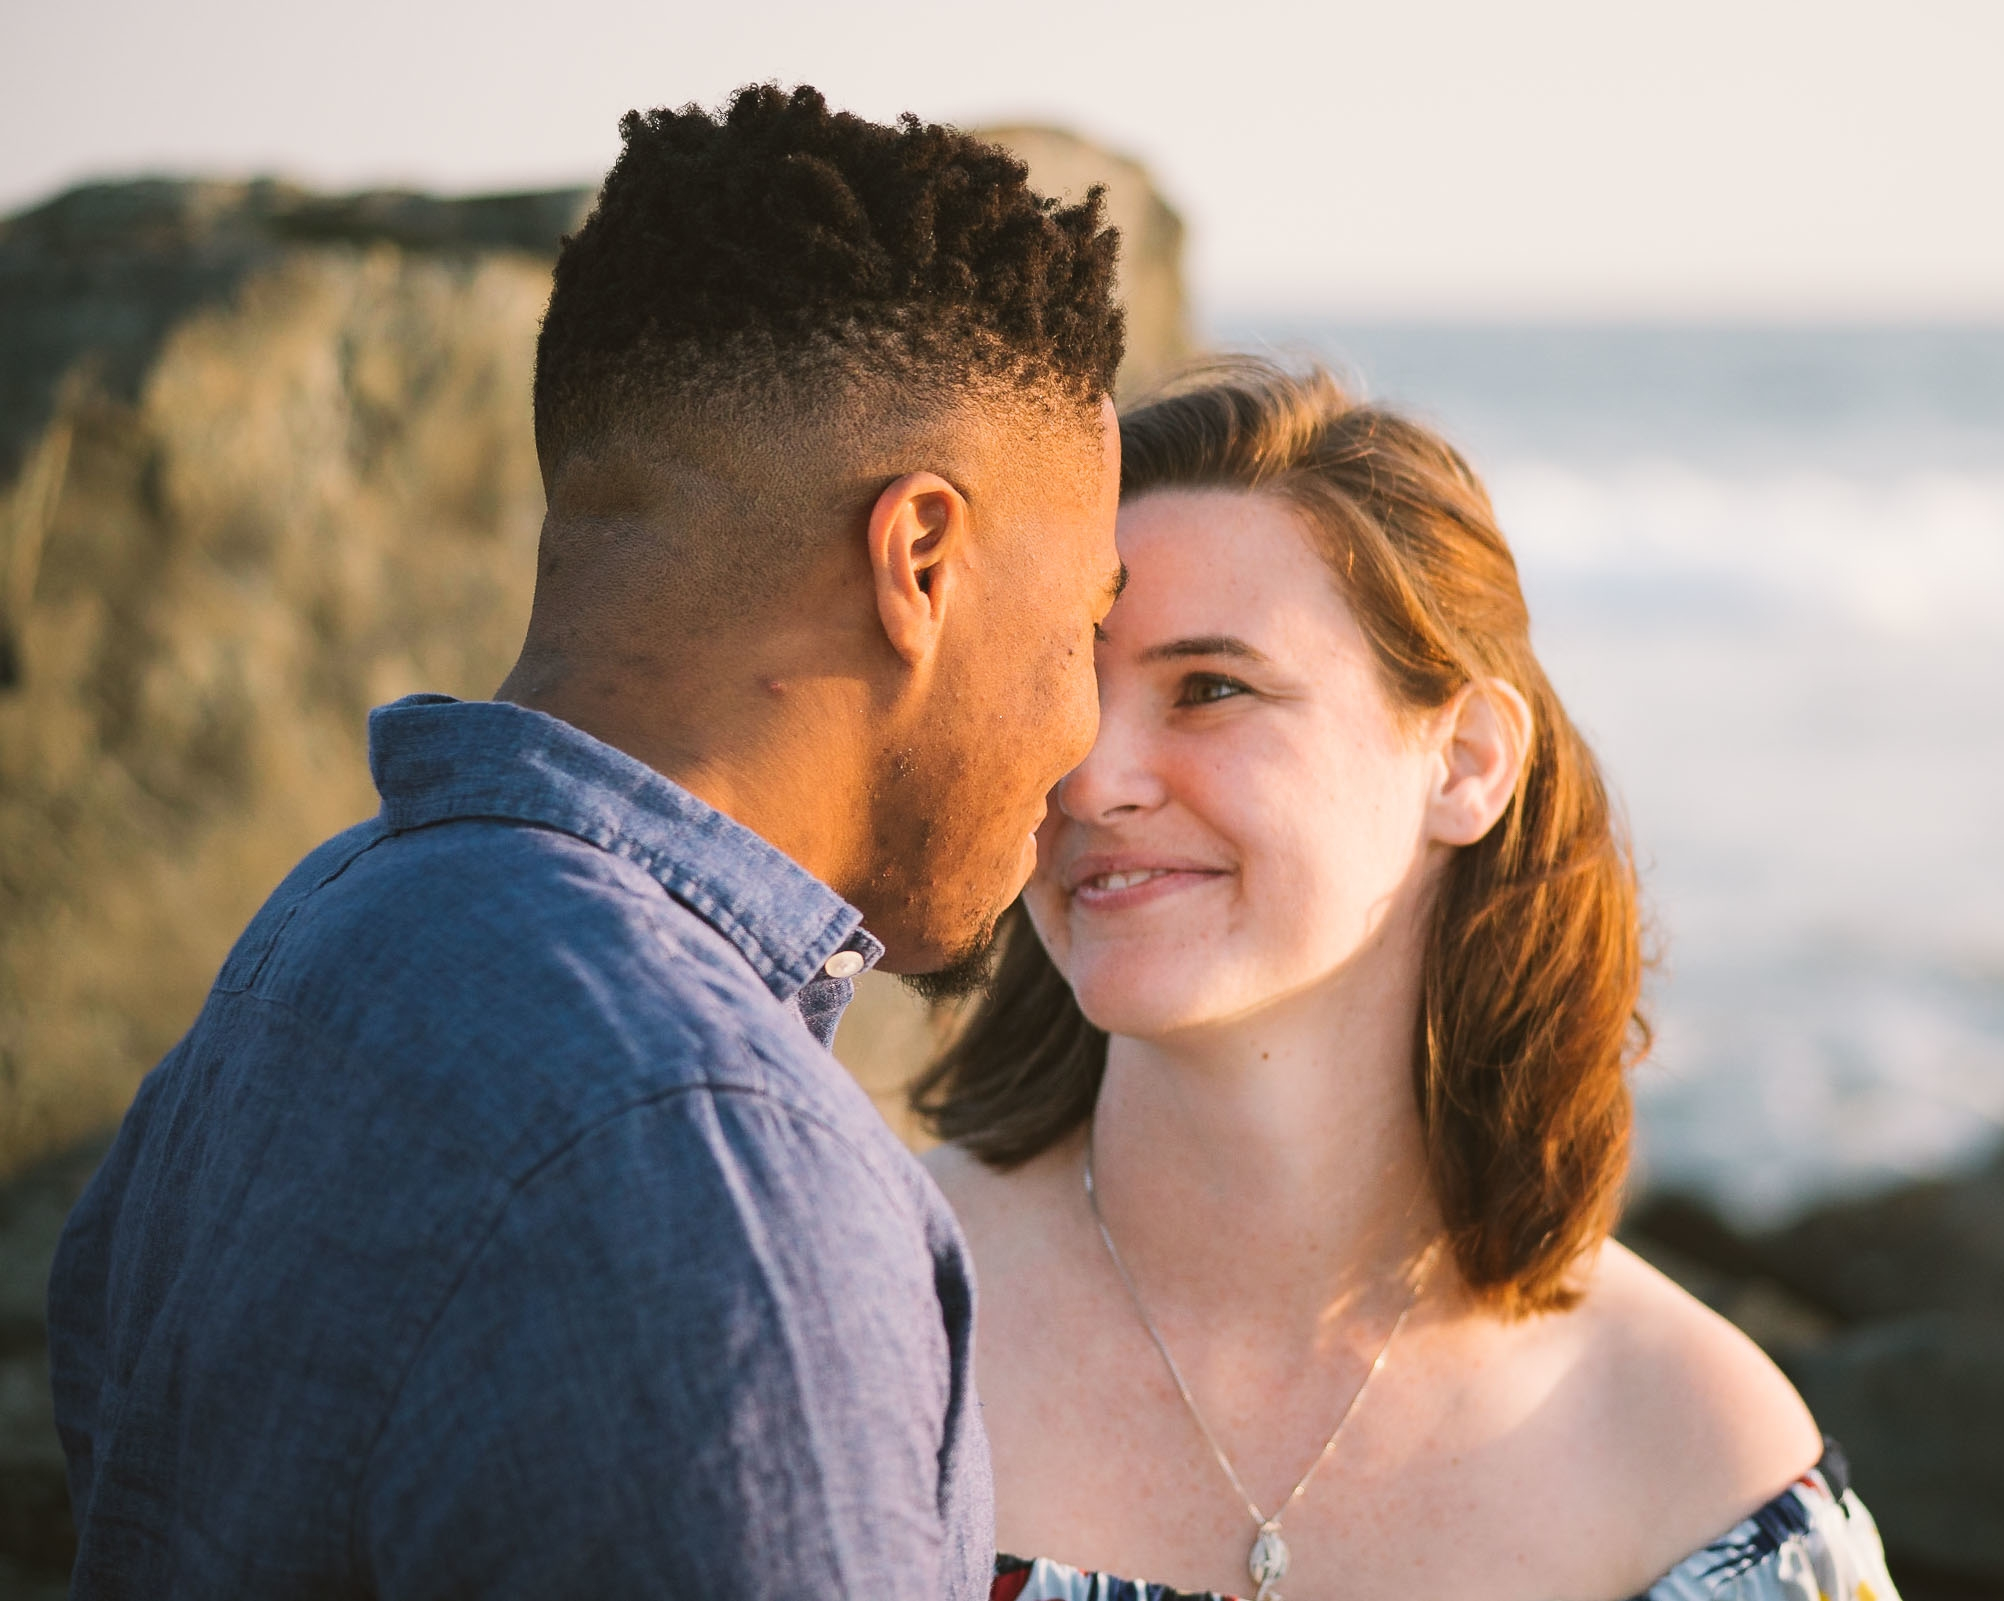 engagement session coronado island sunset san diego california white girl yellow blue red dress african american interracial couple rocks head boop